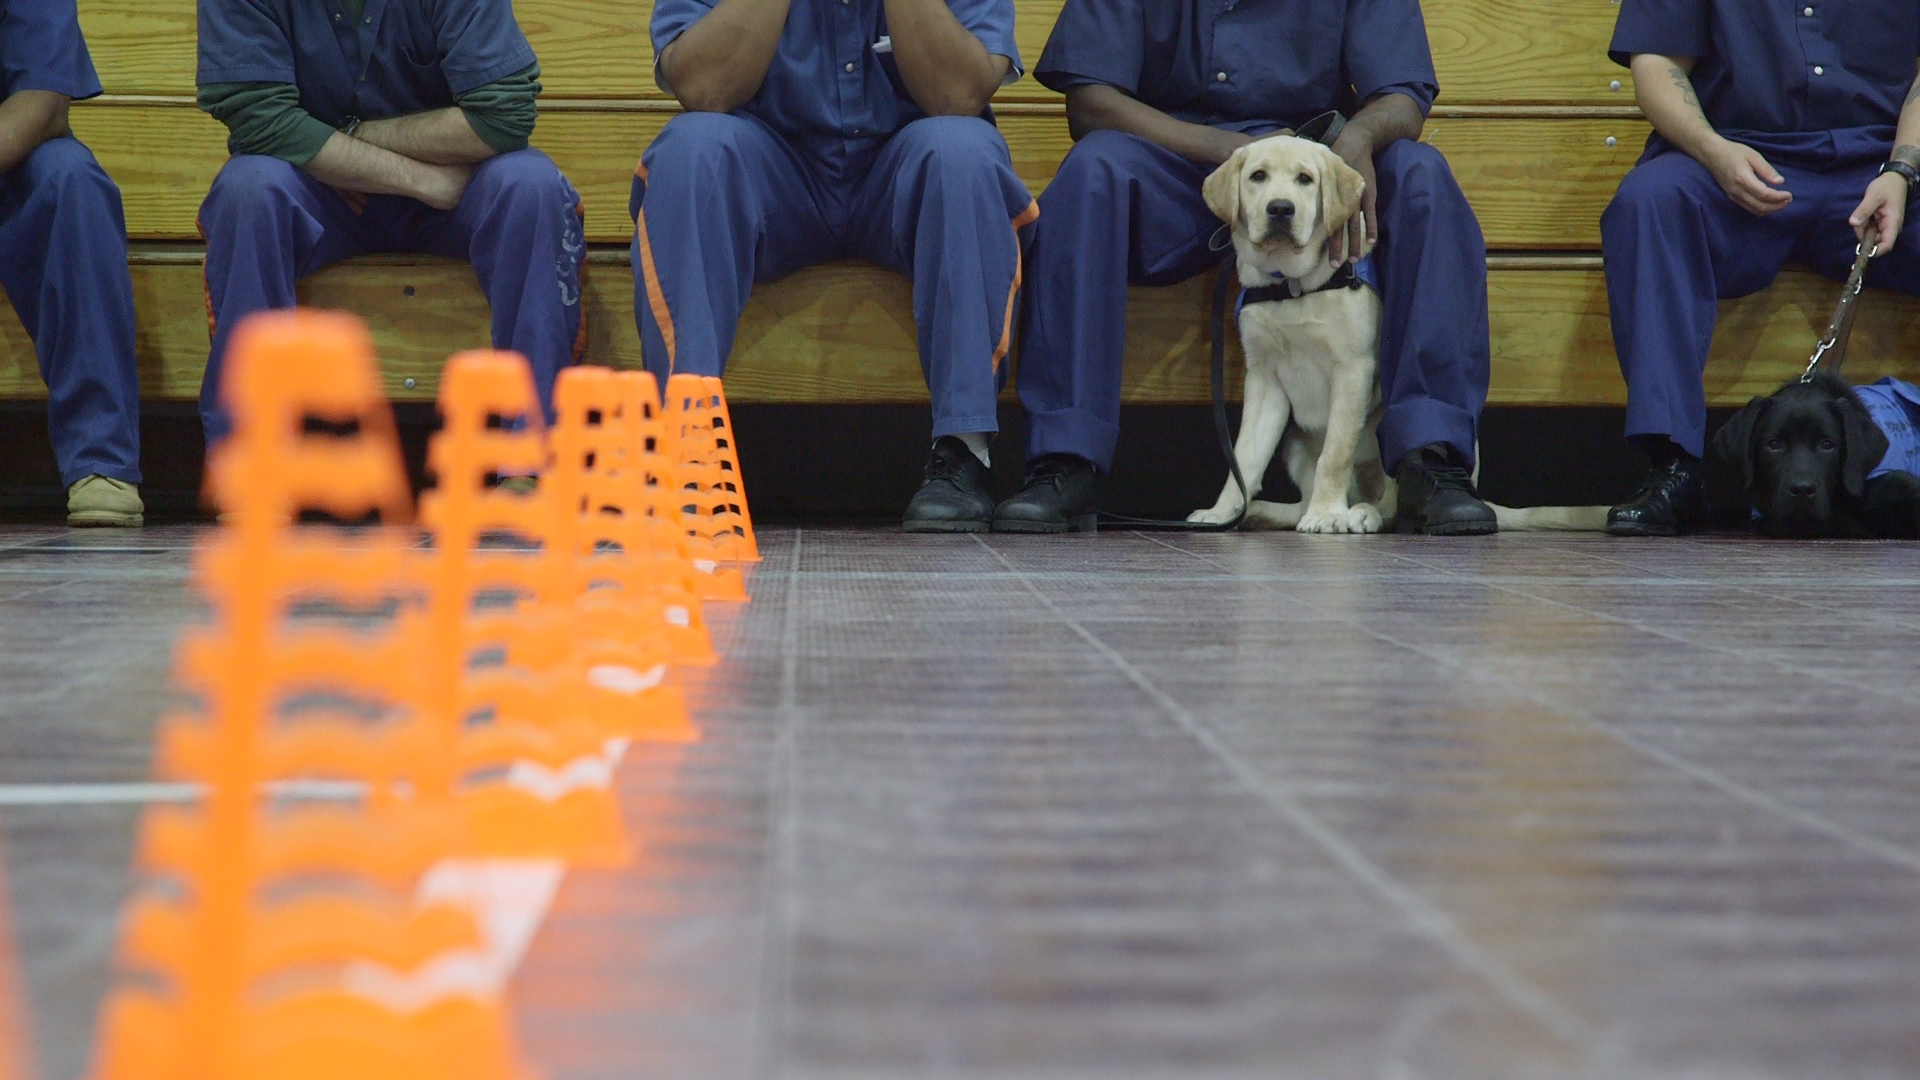 - Our primary audience include: Labrador fans & owners, guide dog trainers & owners*, vets, doggy day care workers, groomers, and anyone interested in learning more about dogs' psychology and well-being.*Through audio description, we'll create a version for partially sighted people.